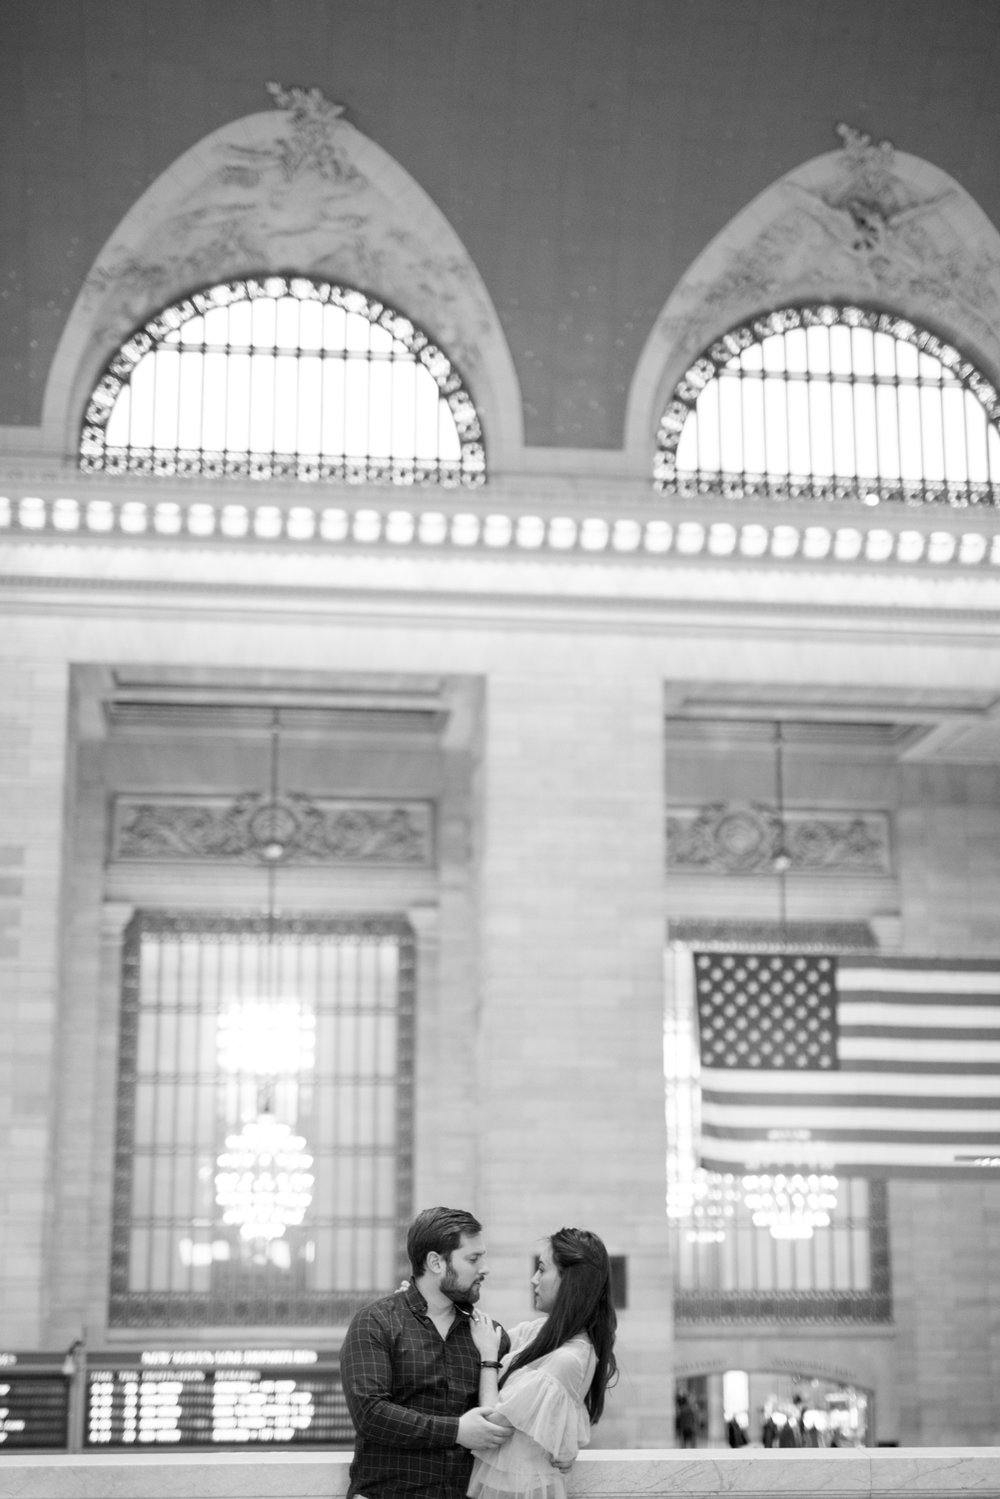 Anahi+David- Classic NYC Engagement Session- Grand Central New York City- Olivia Christina Photo-55.JPG